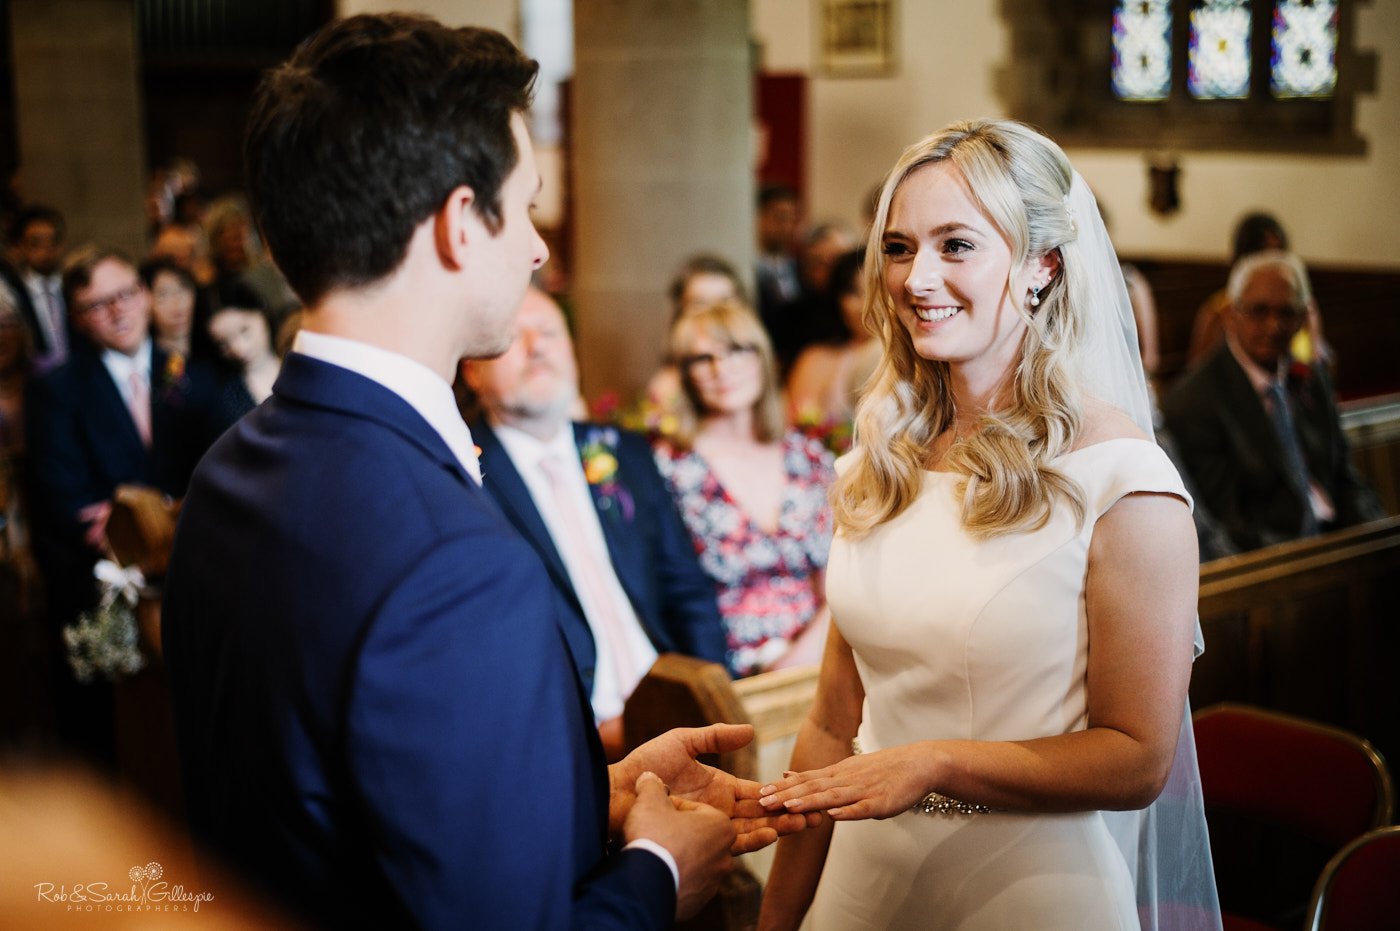 Bride and groom exchange rings during wedding ceremony in church